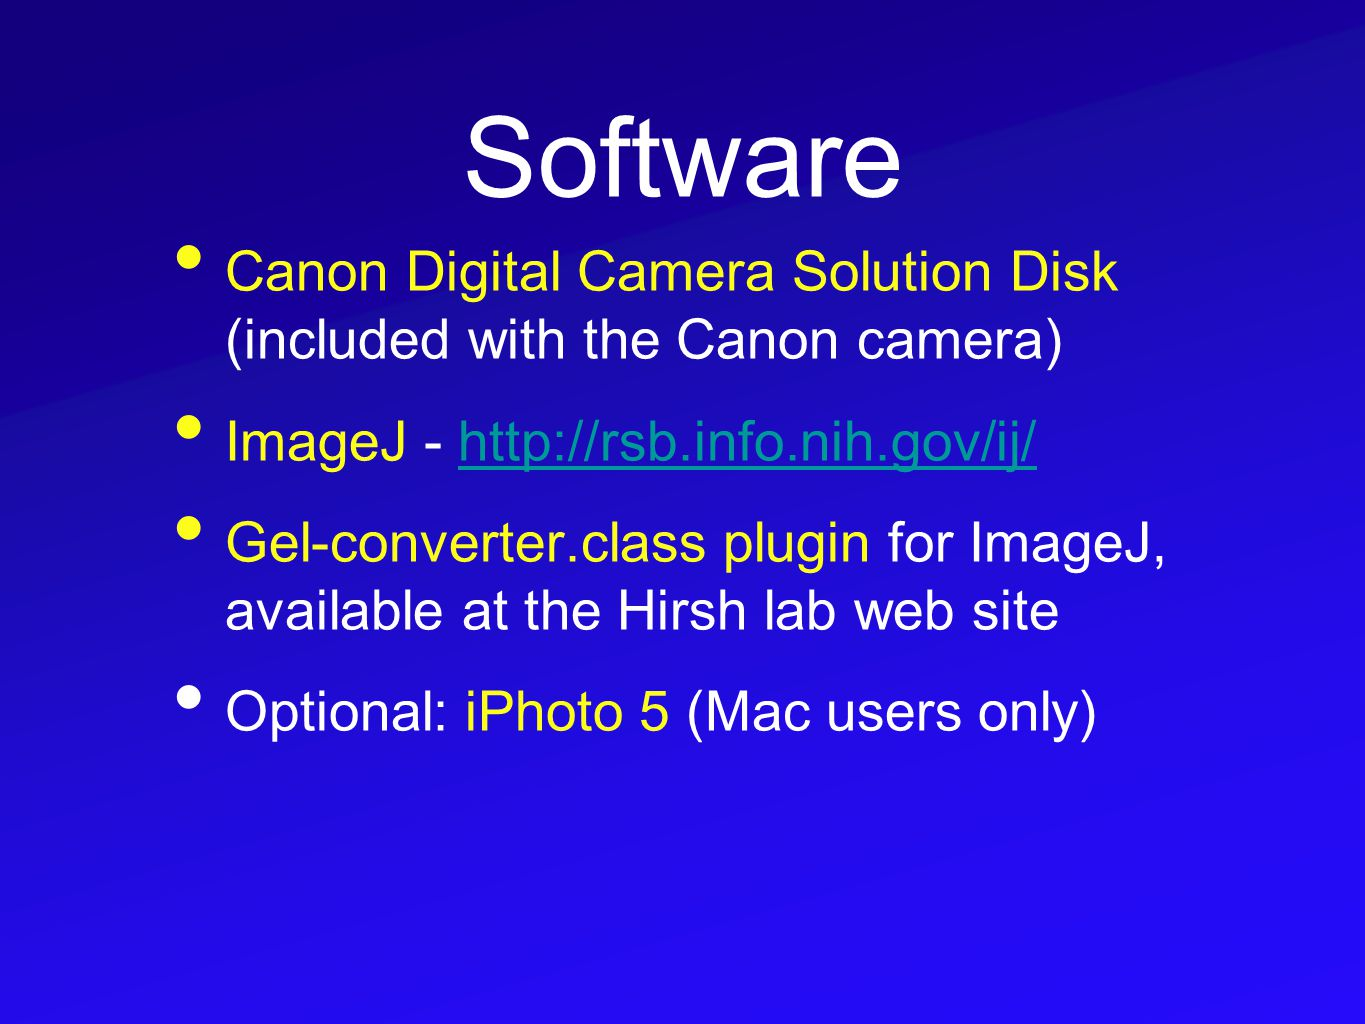 Software Canon Digital Camera Solution Disk (included with the Canon camera) ImageJ - http://rsb.info.nih.gov/ij/http://rsb.info.nih.gov/ij/ Gel-converter.class plugin for ImageJ, available at the Hirsh lab web site Optional: iPhoto 5 (Mac users only)